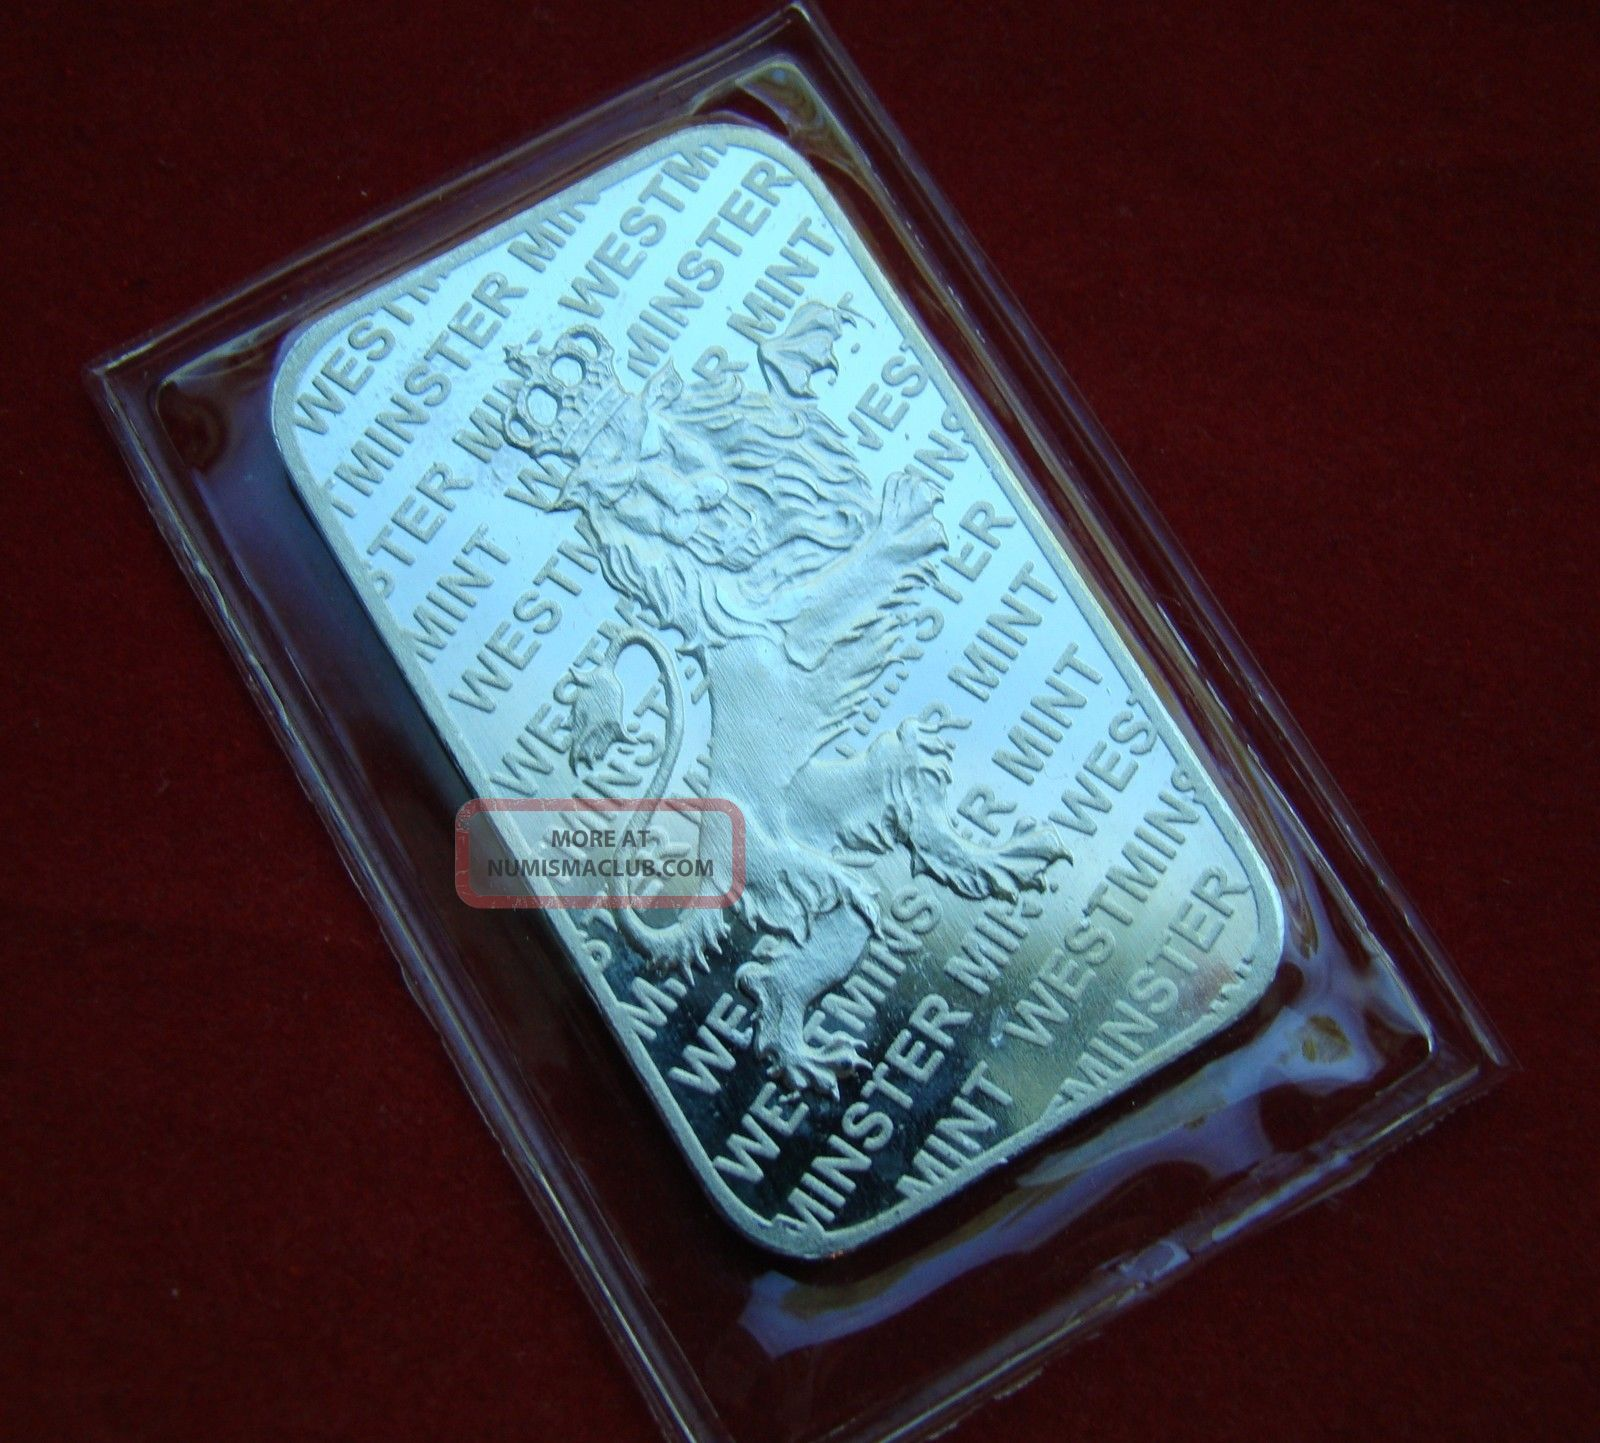 Solid Silver Bar 1 Troy Oz Crowned Lion Wm Westminster Usa